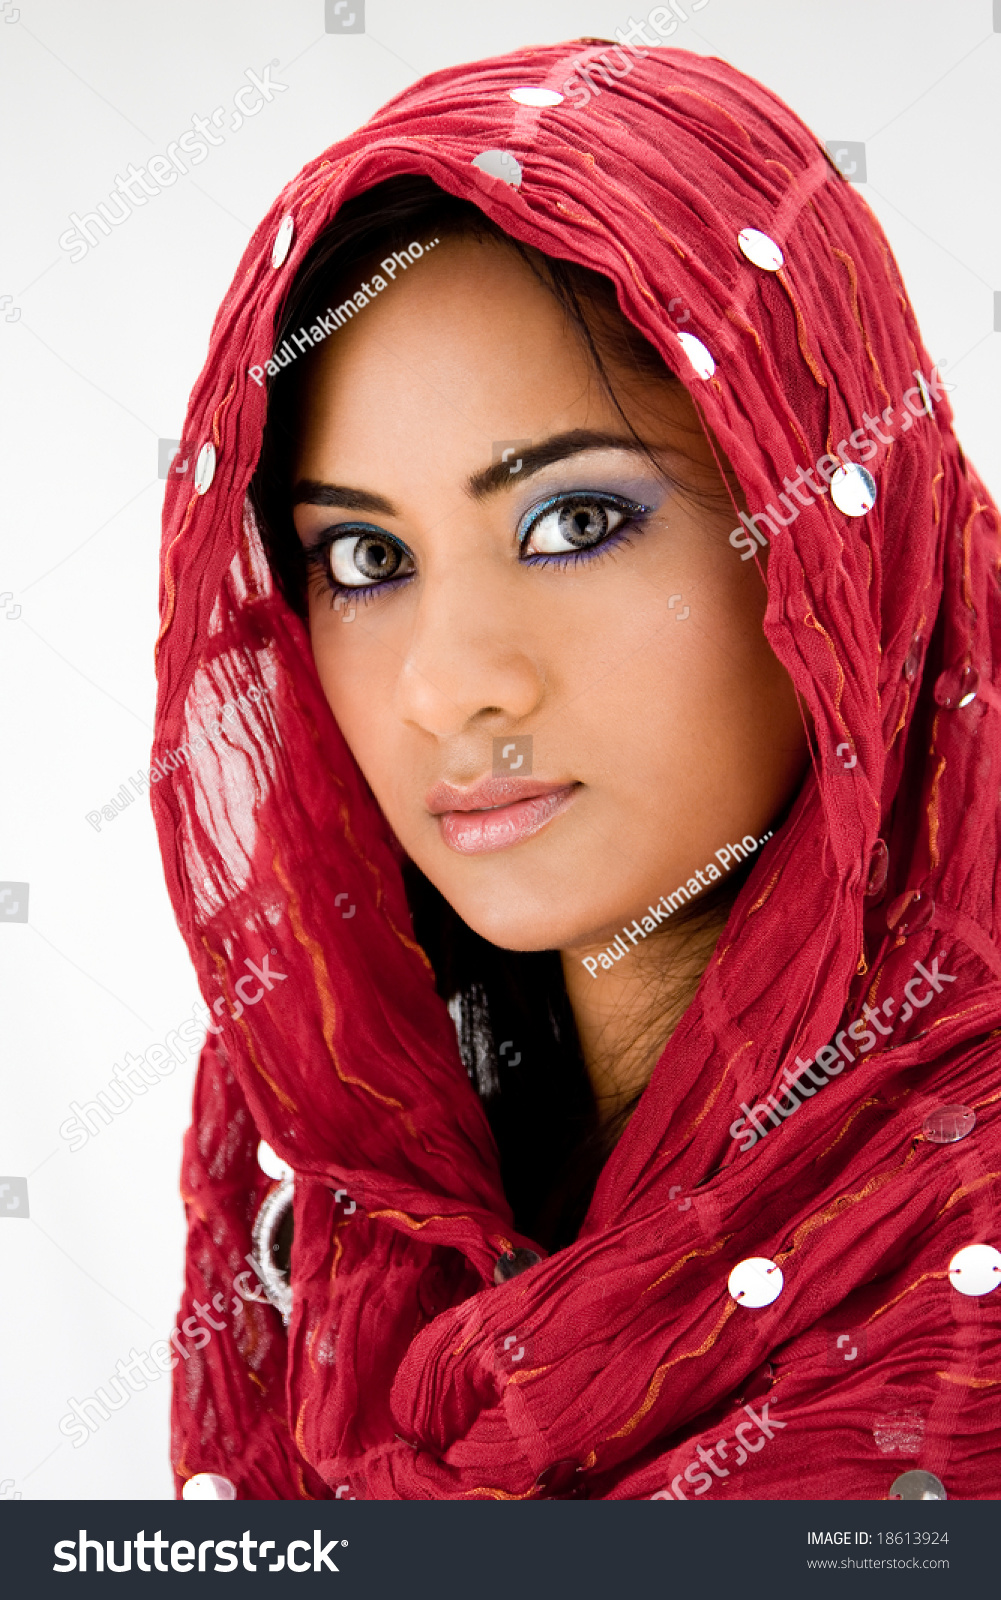 Beautiful Woman Red Head Scarf Isolated Stock Photo -4030